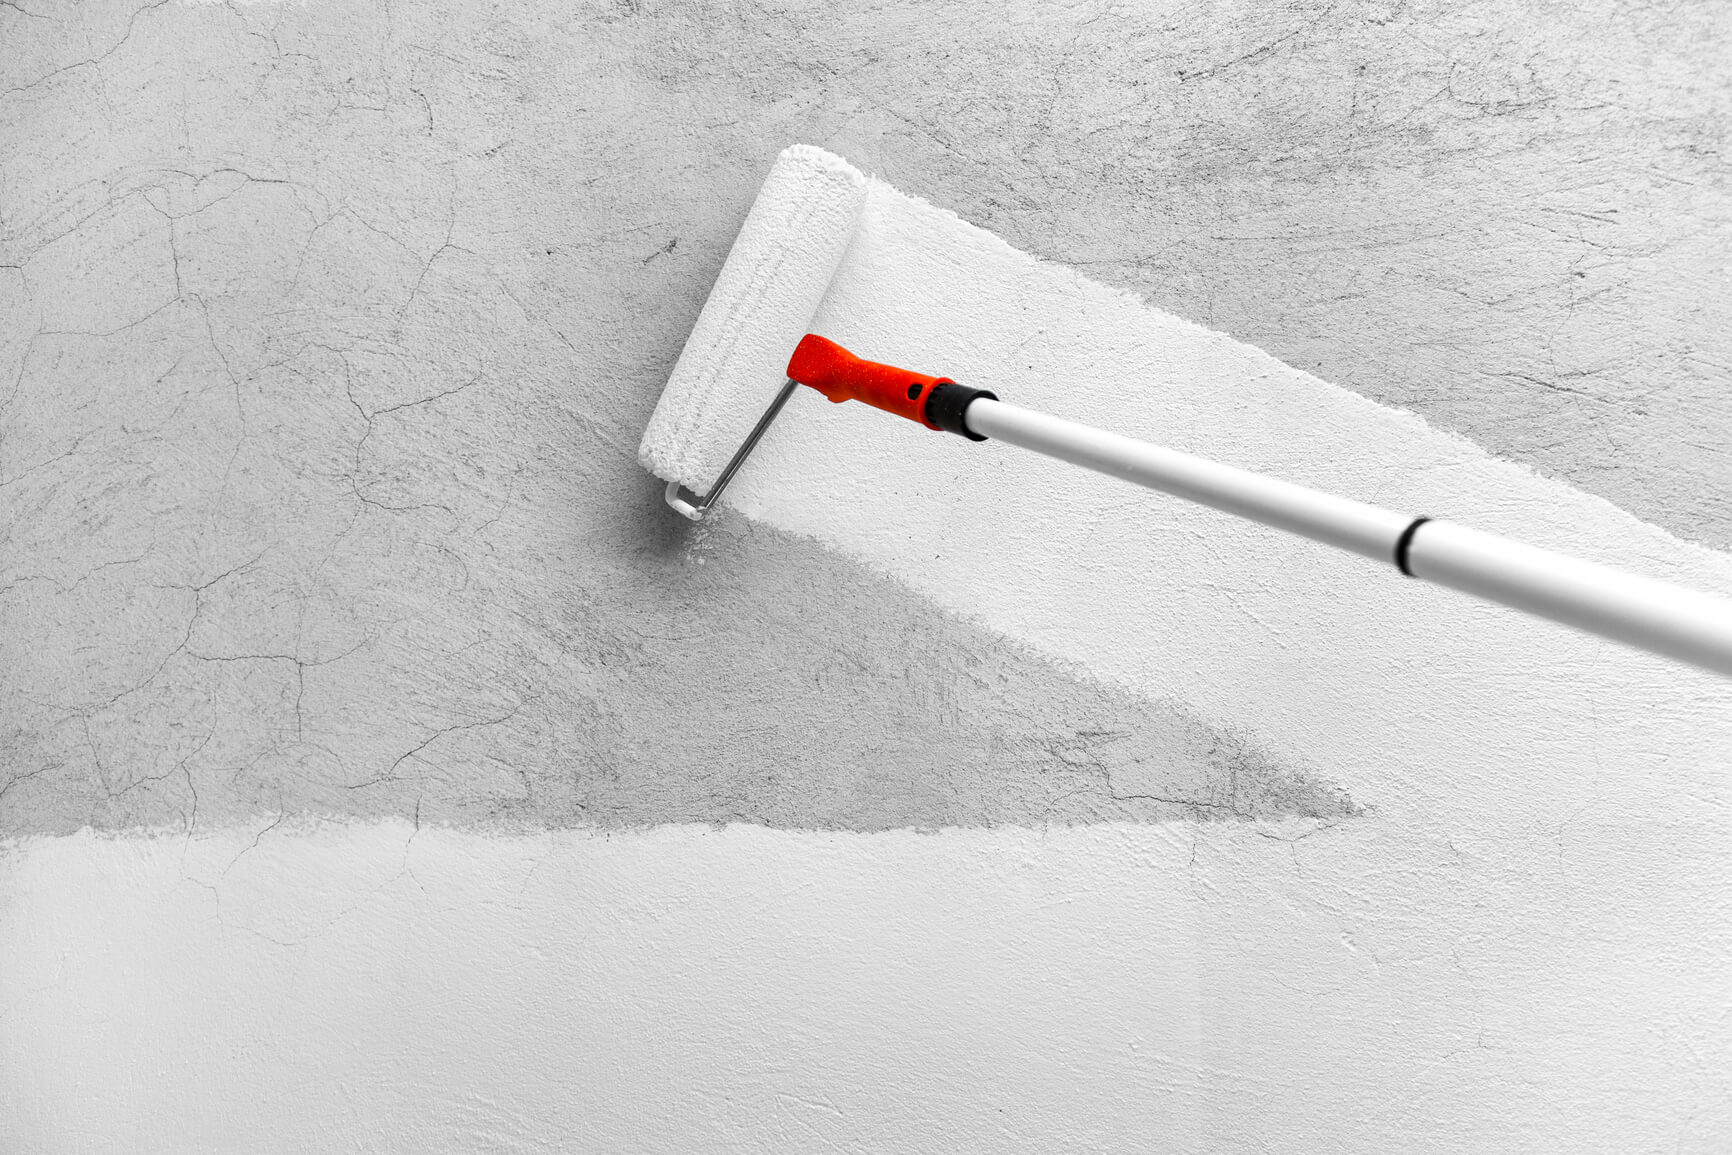 Primer Painting-San Marcos TX Professional Painting Contractors-We offer Residential & Commercial Painting, Interior Painting, Exterior Painting, Primer Painting, Industrial Painting, Professional Painters, Institutional Painters, and more.